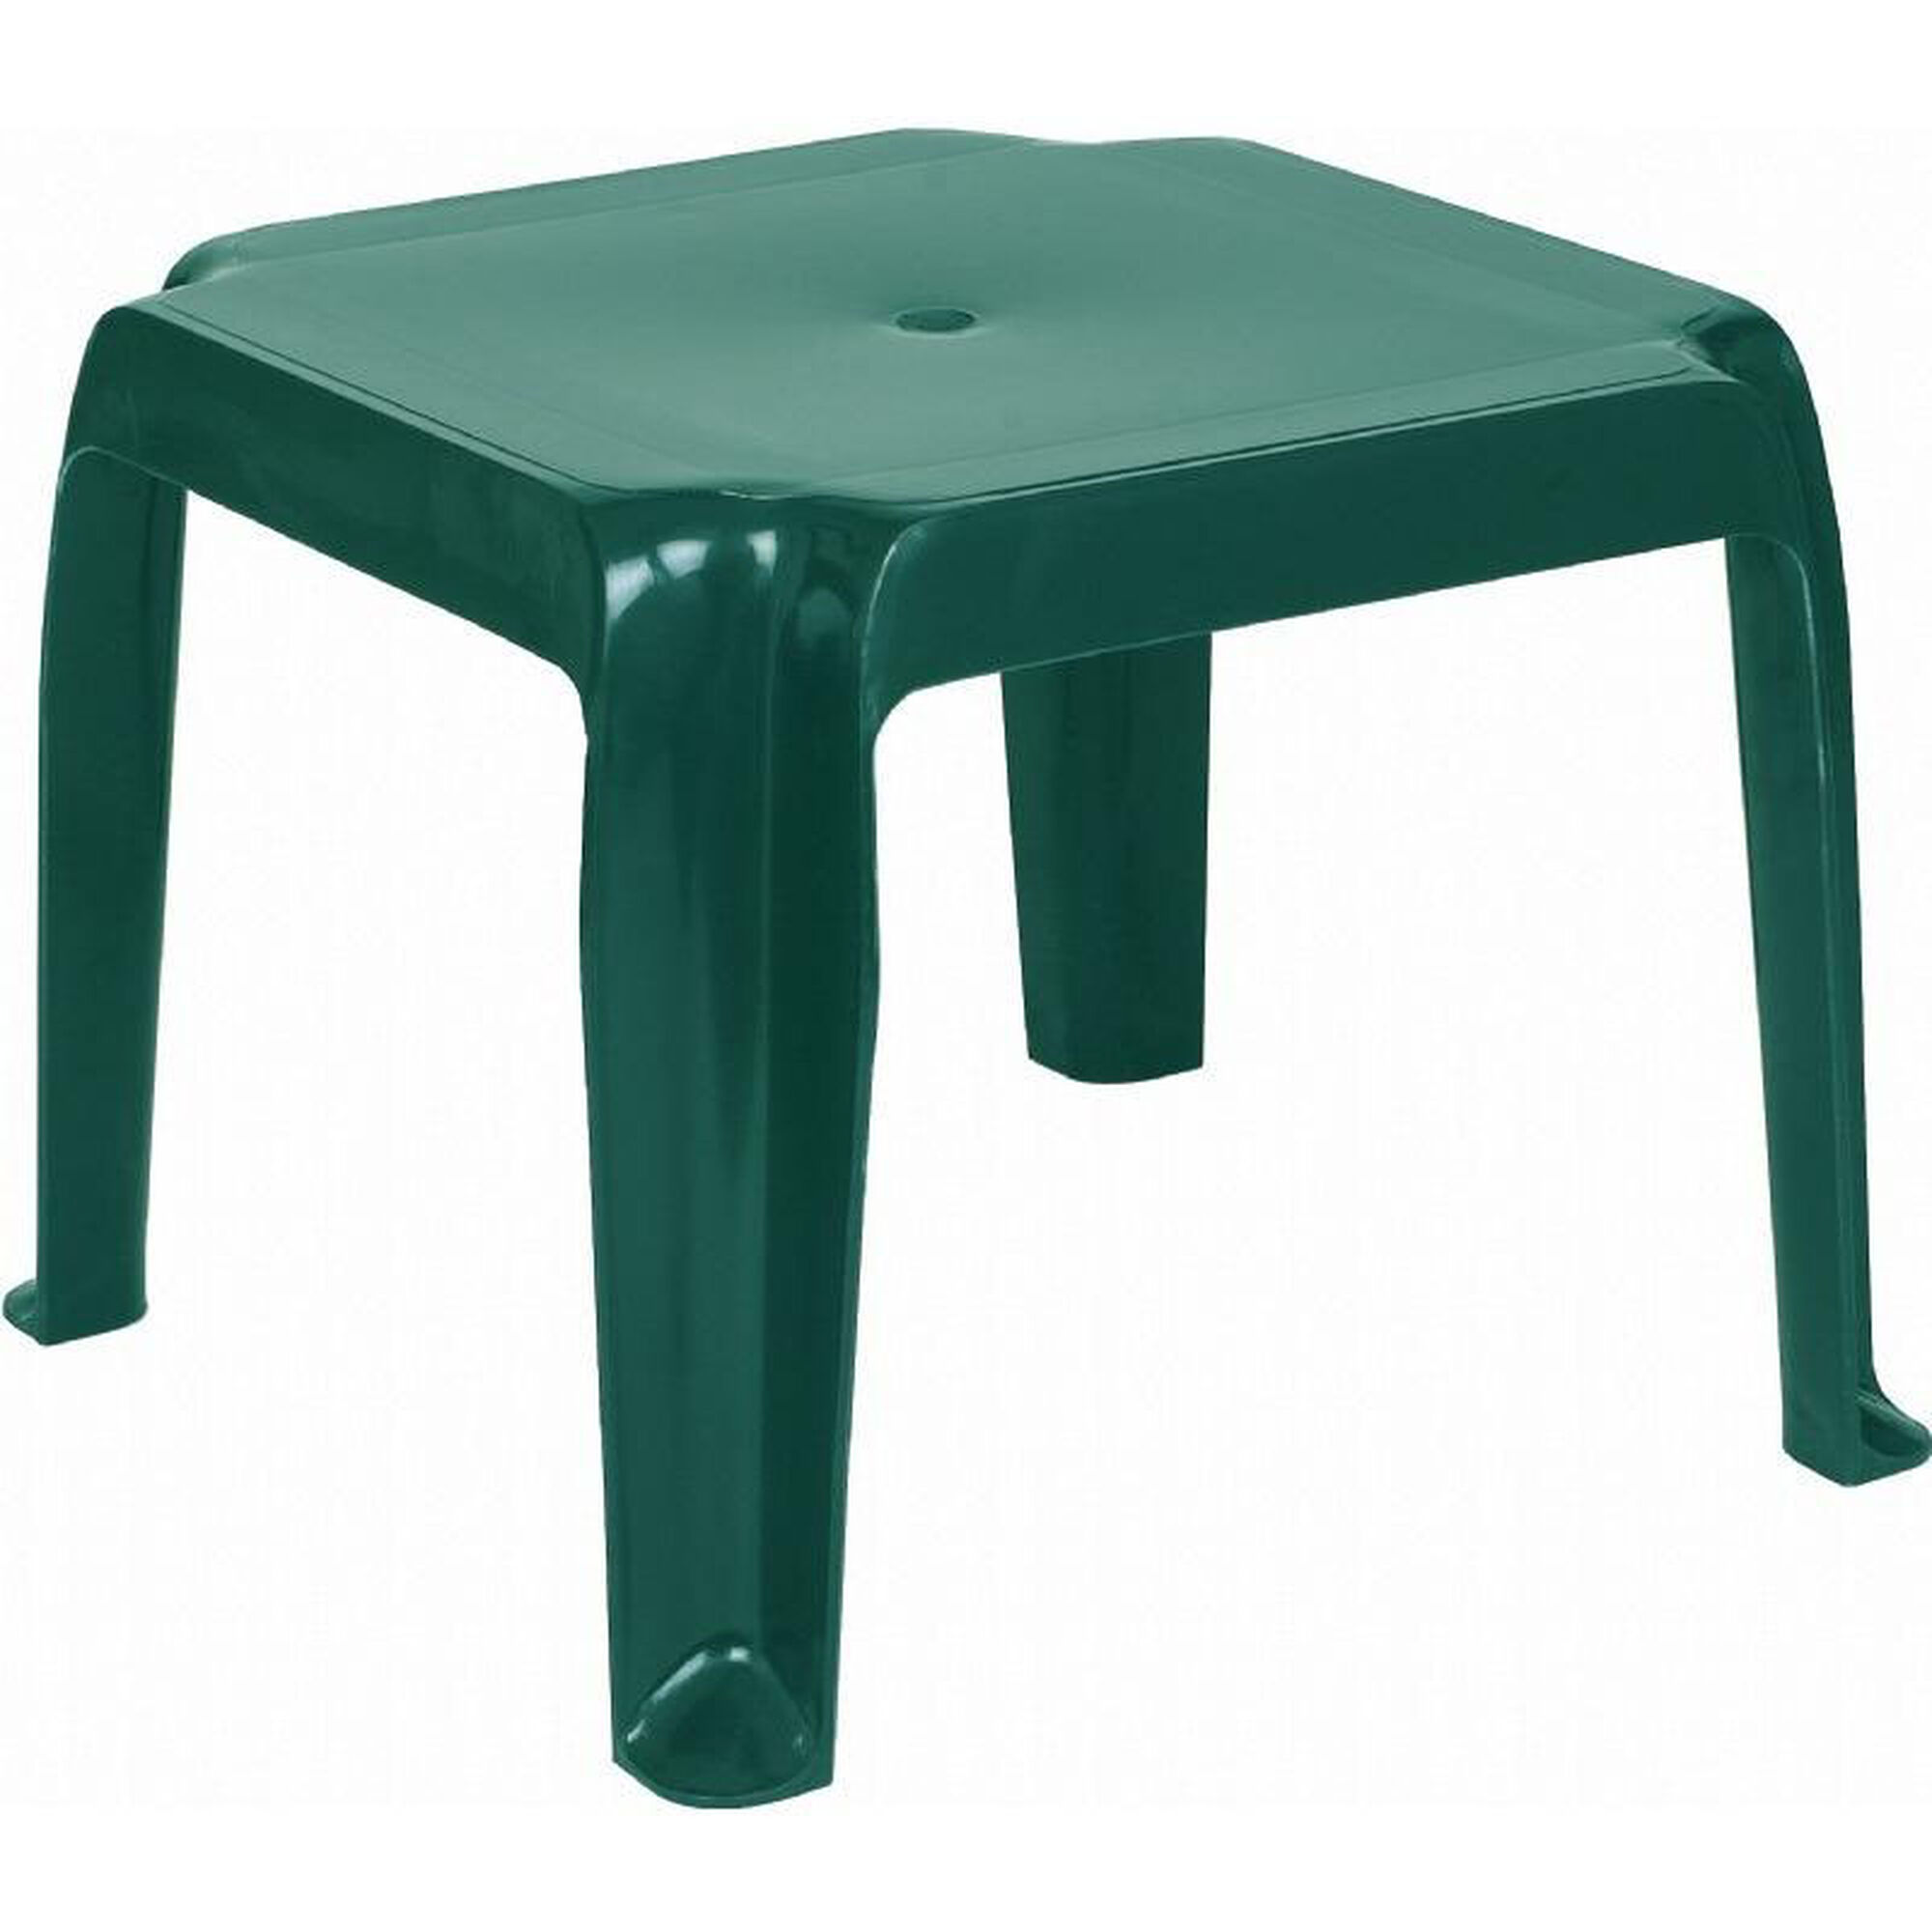 Green Stacking Side Table Isp240 Gre